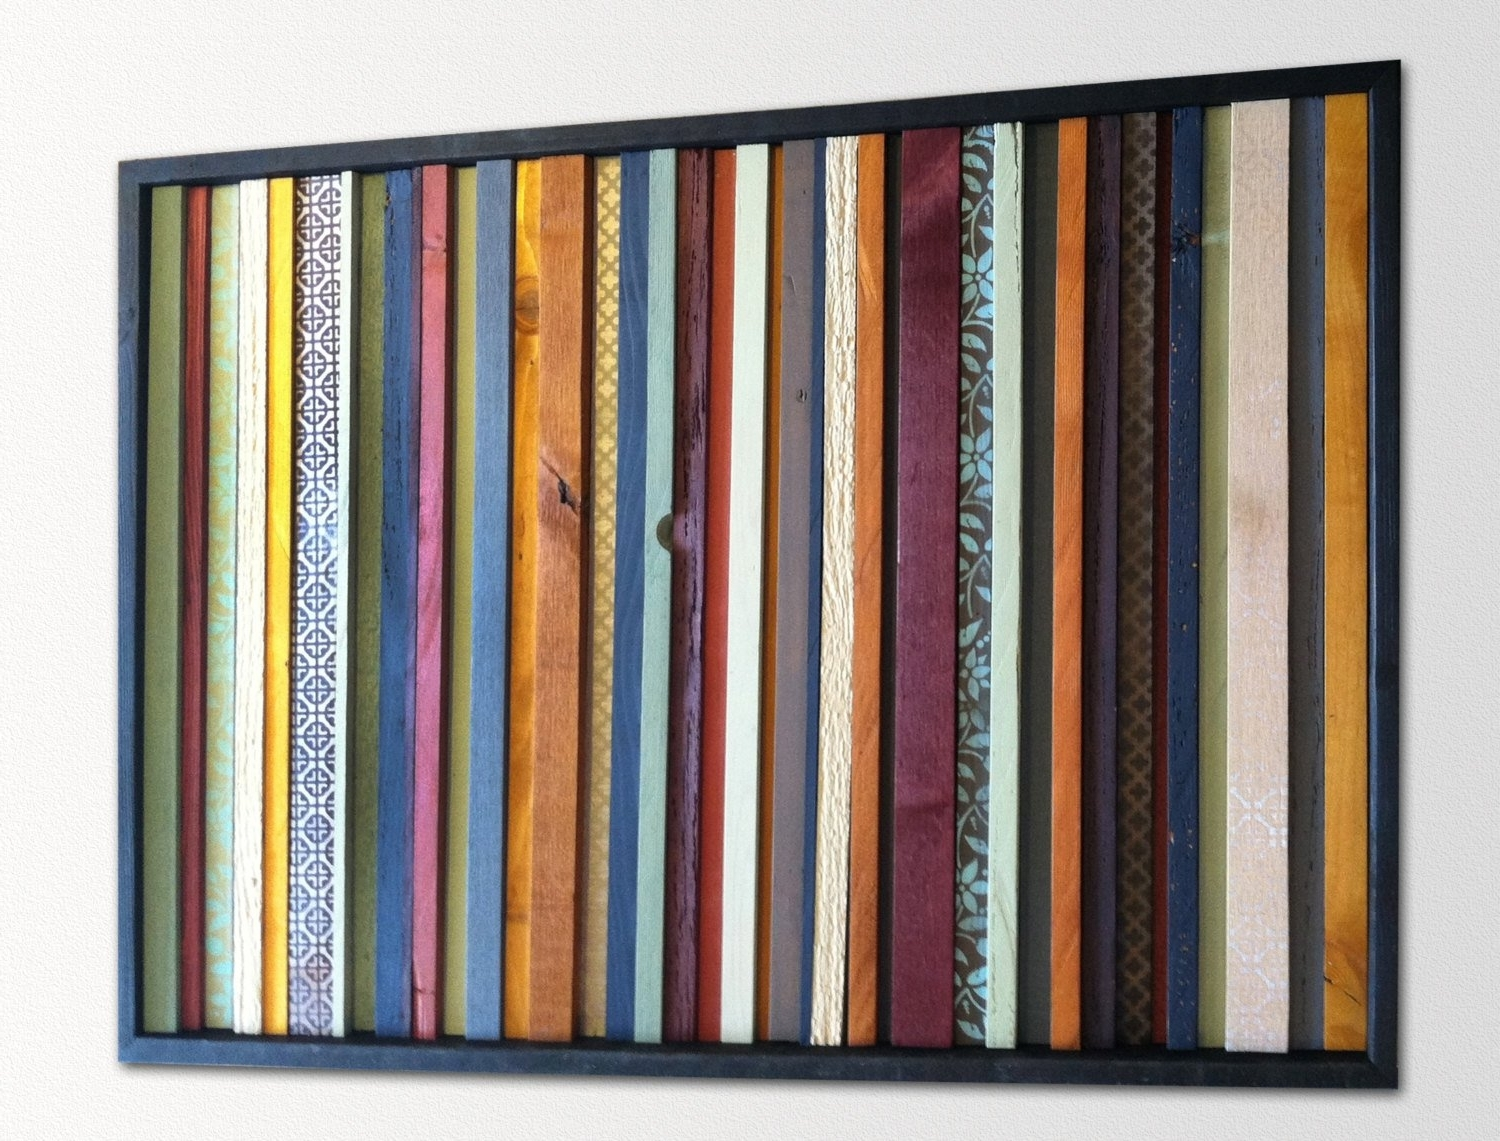 Modern Wood Wall Art – India – Wood Stripes In Orange, Yellow, Blues With Regard To 2018 Orange Wall Art (View 6 of 20)